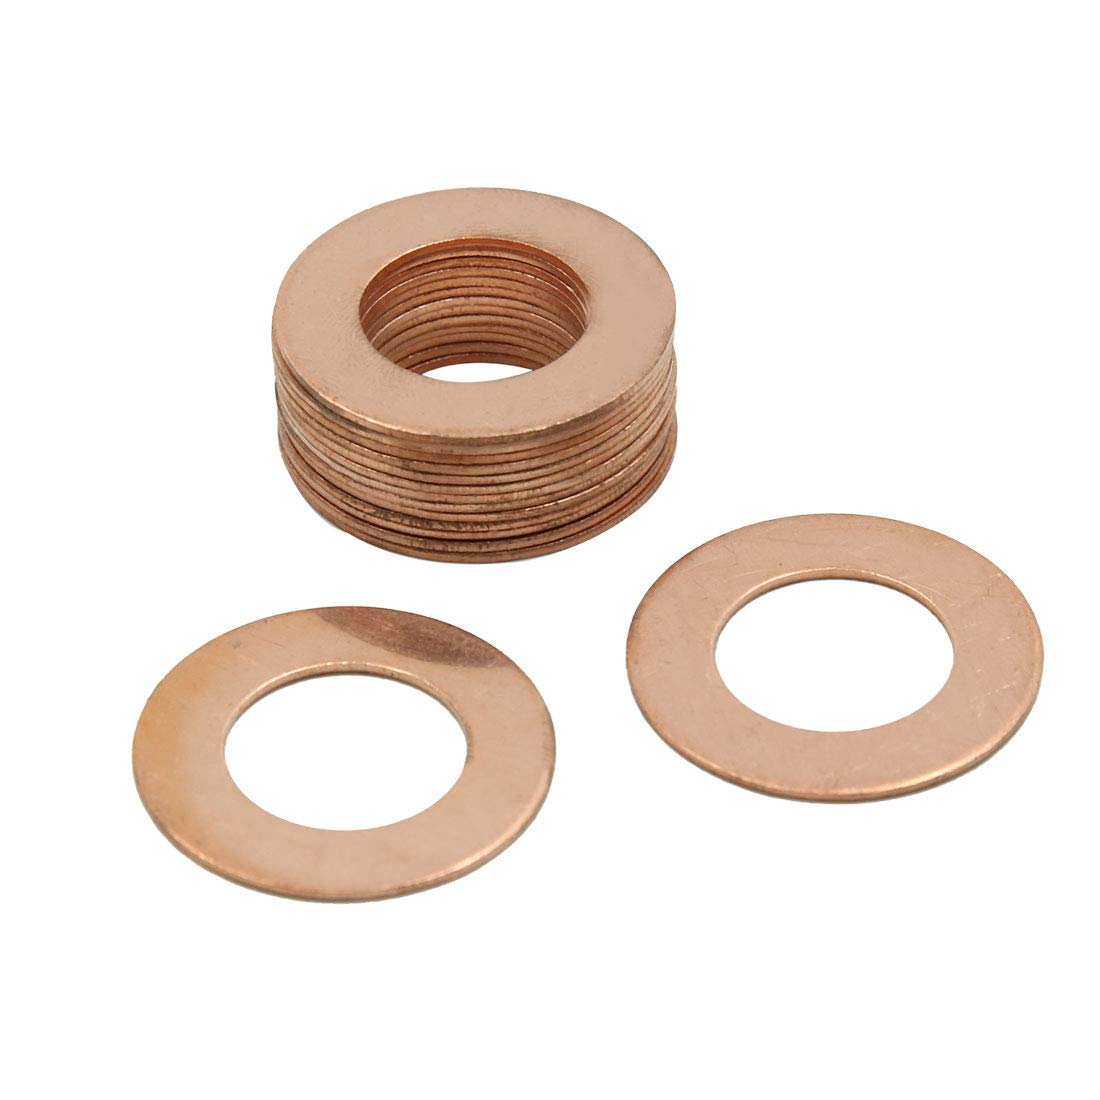 X AUTOHAUX 18mm Inner Dia Copper Crush Washers Car Flat Sealing Plate Gaskets Rings 15pcs